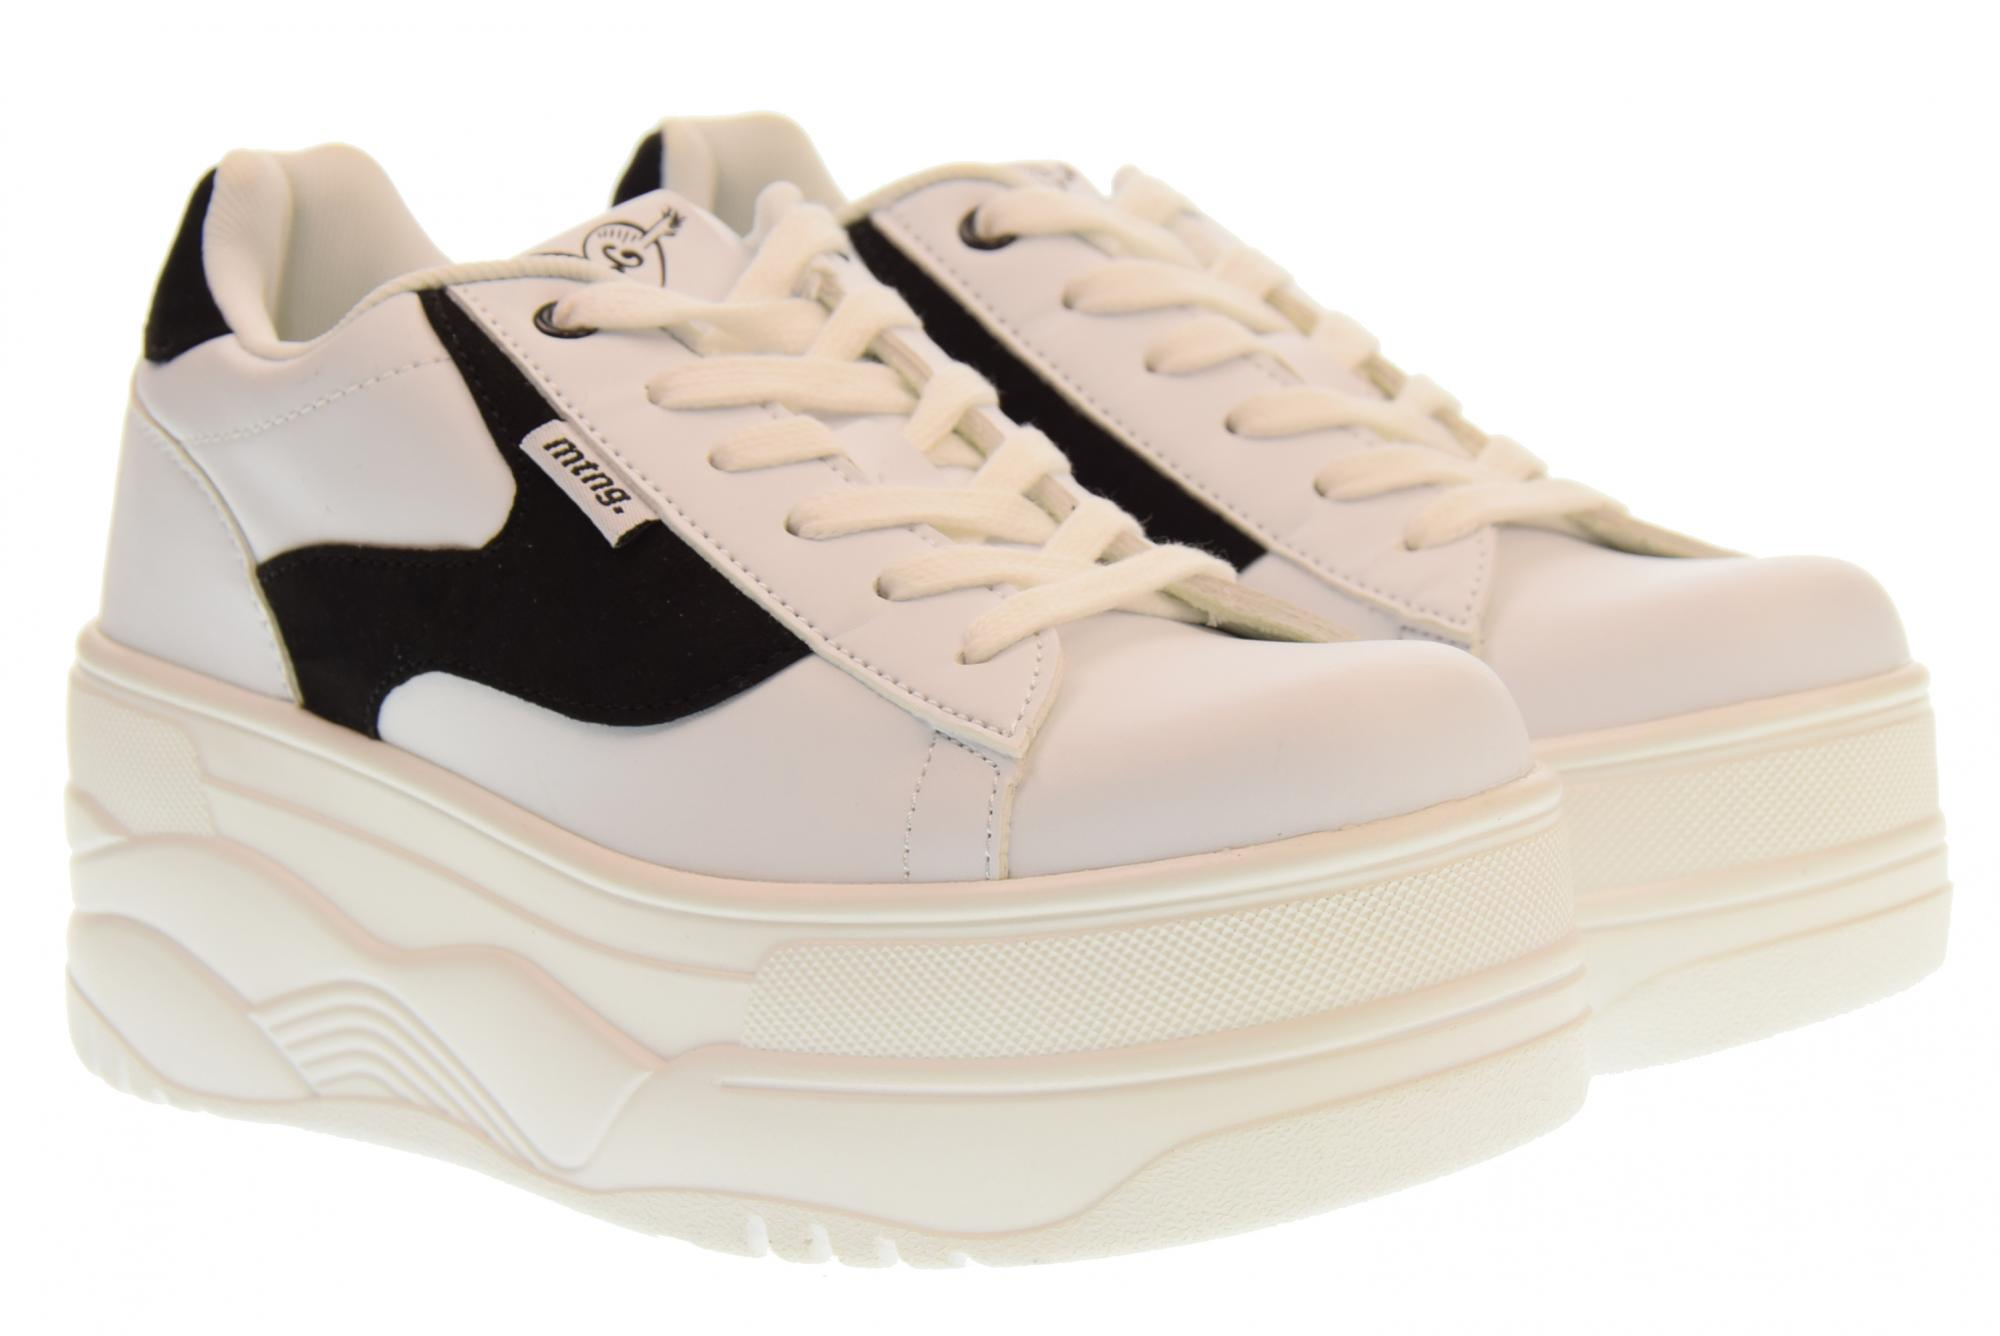 91ddcd036ceb Details about Mtng A18u shoes woman low platform sneakers 69282 C19667 TOP